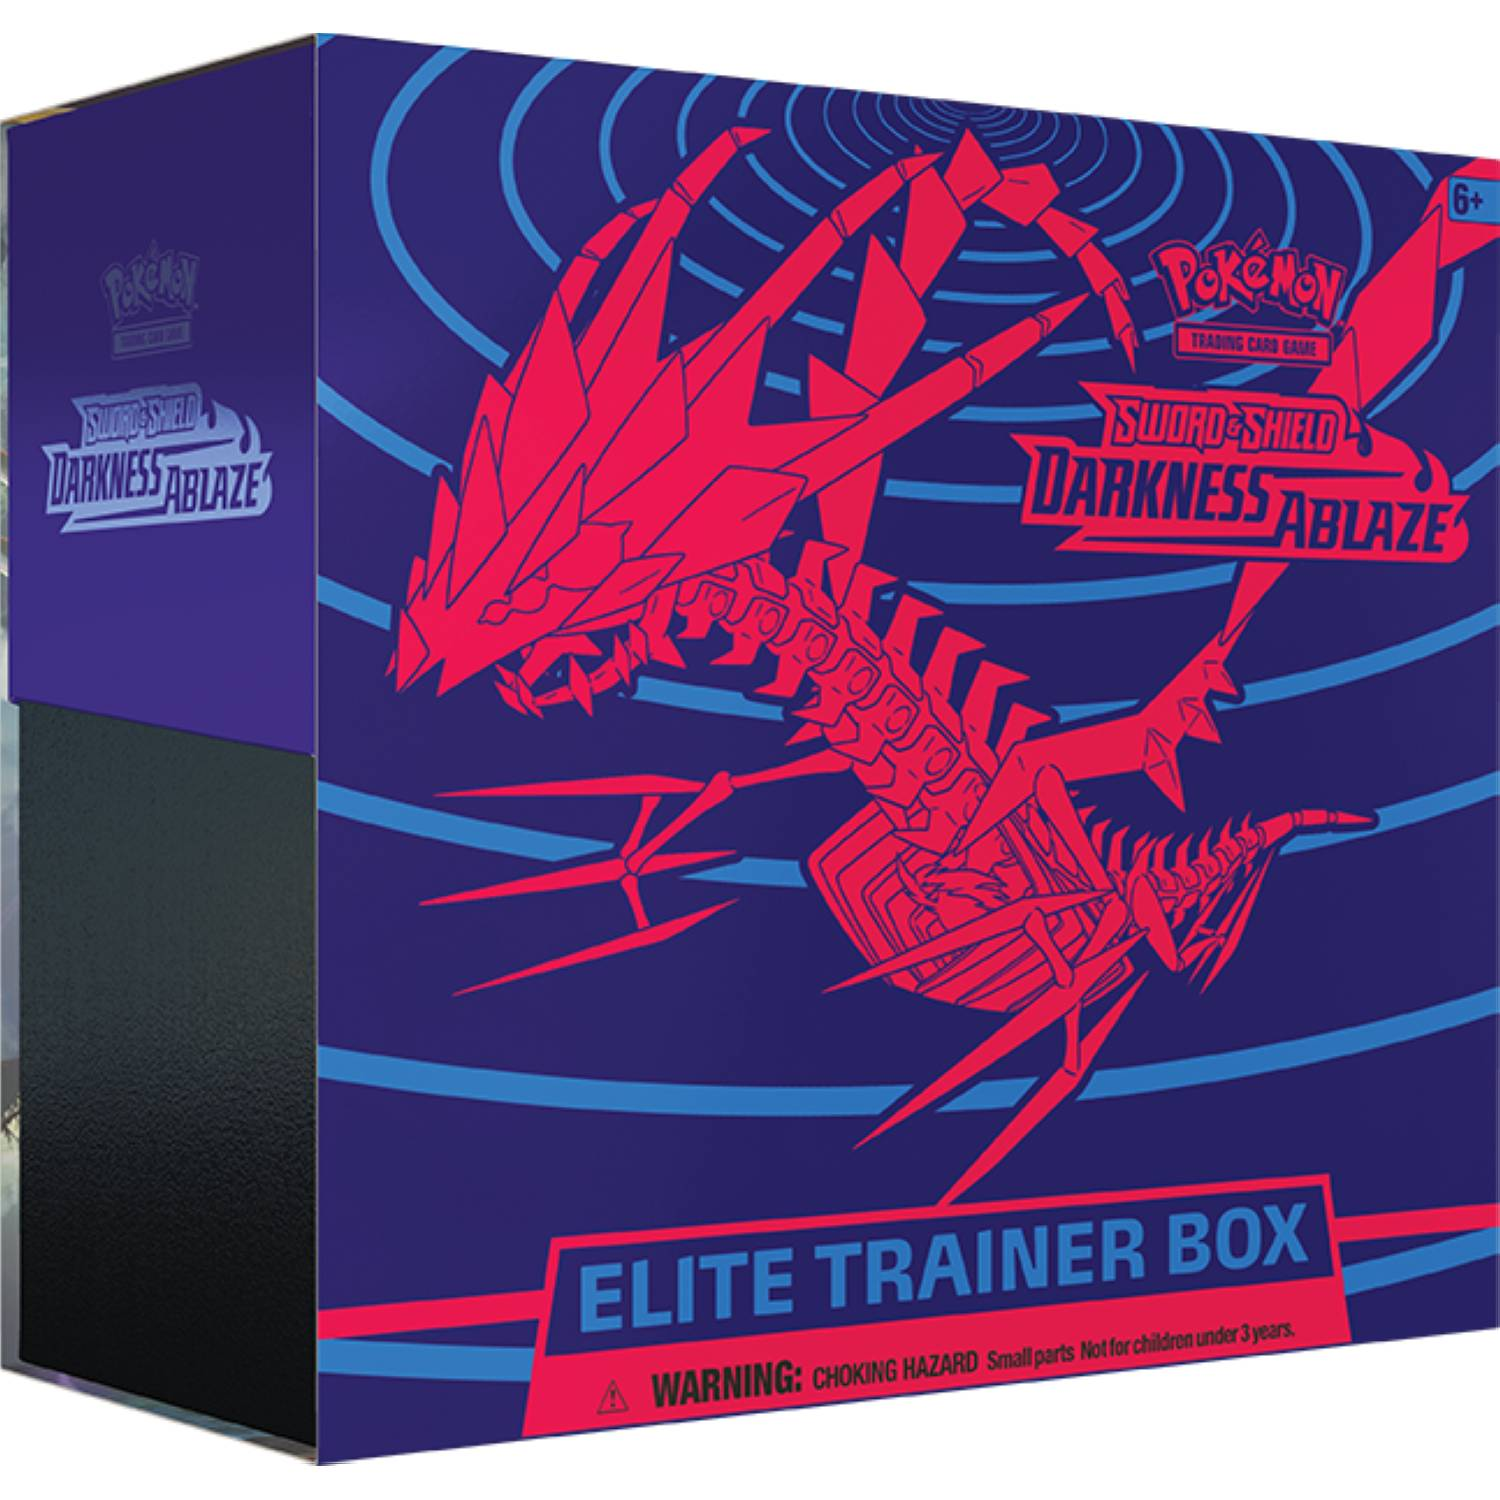 pokemon tcg elite trainer box darkness ablaze sword and shield